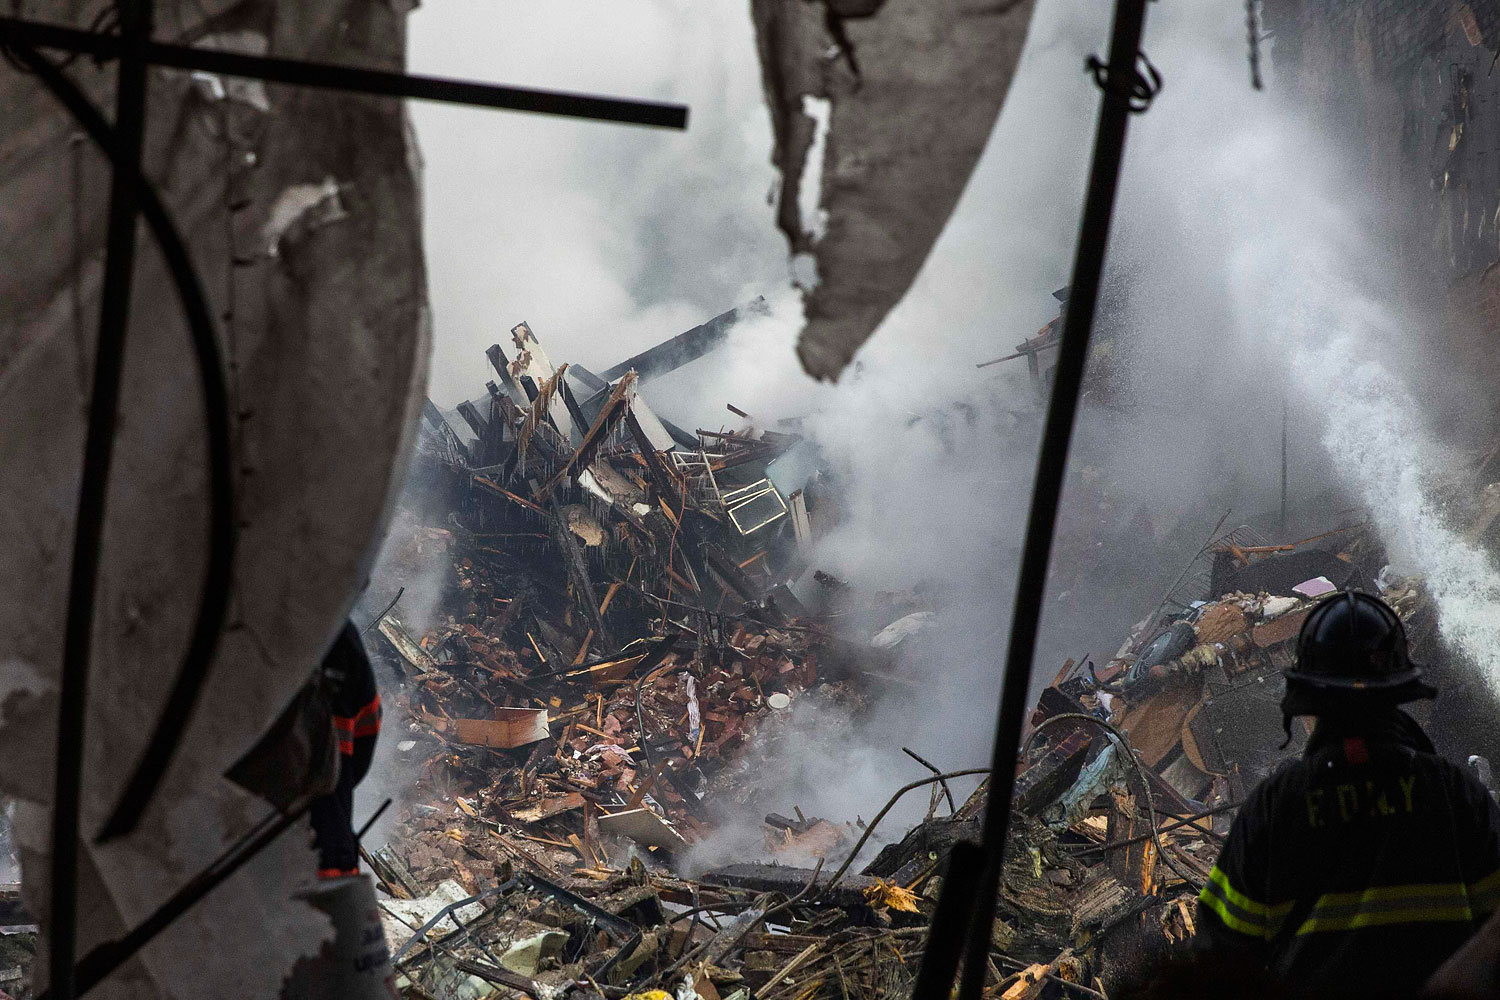 New York City emergency responders search through the rubble at the site of a building explosion in the Harlem section of New York, March 13, 2014.